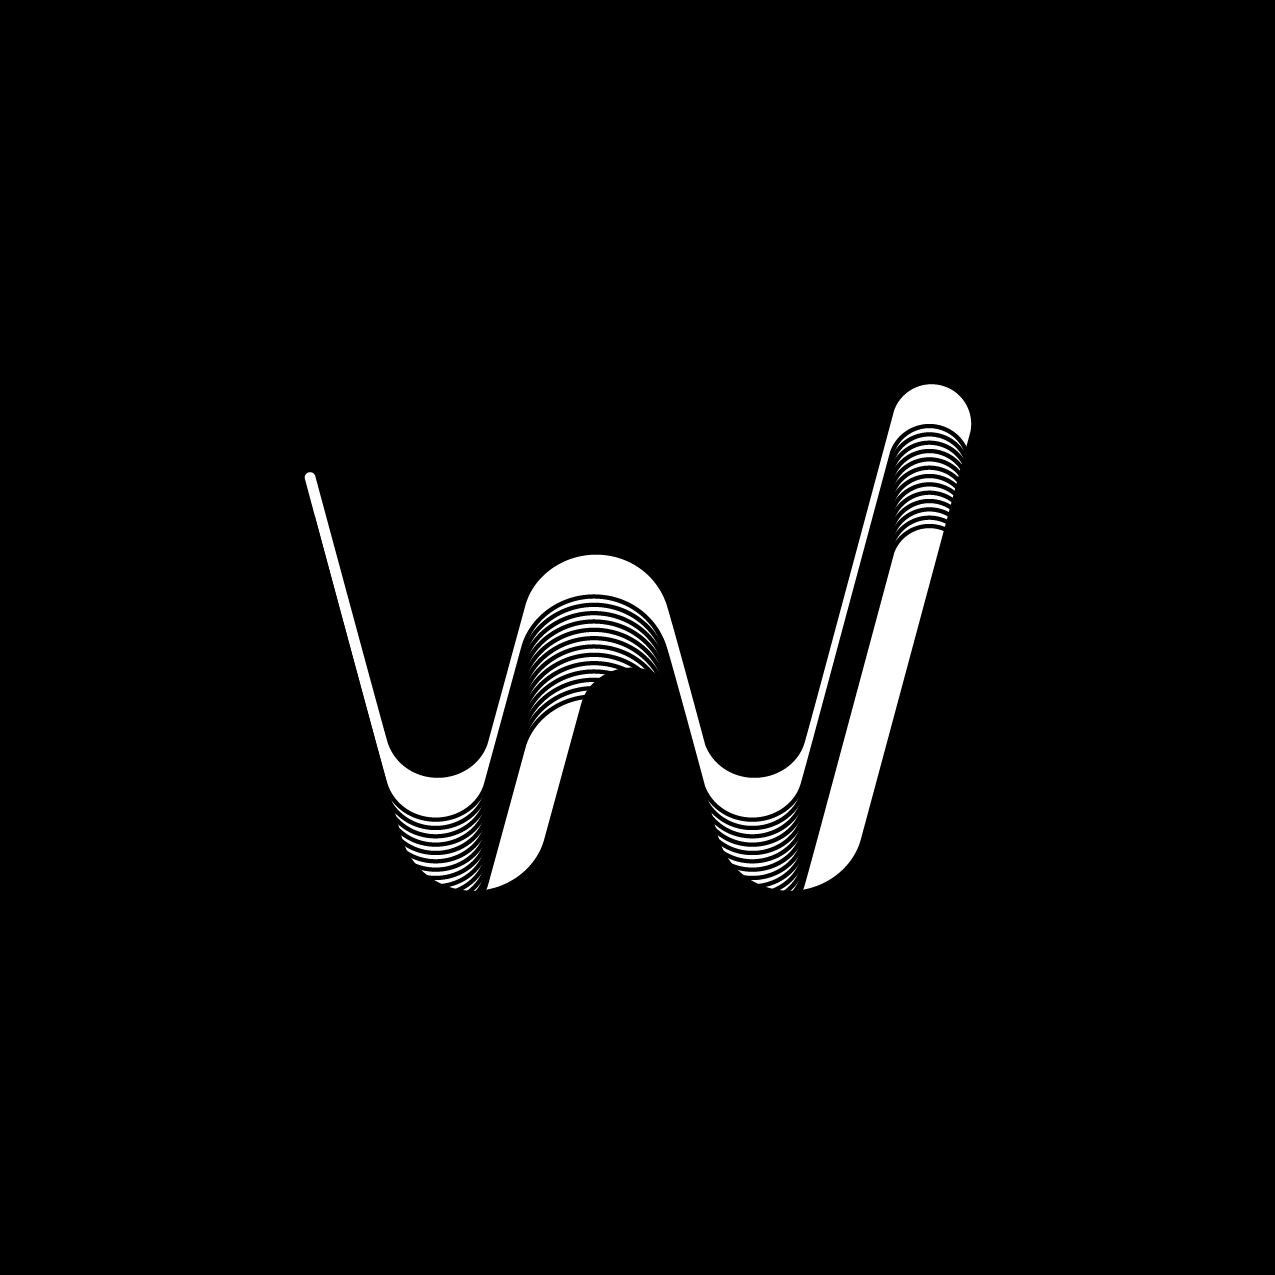 Letter W8 Design by Furia